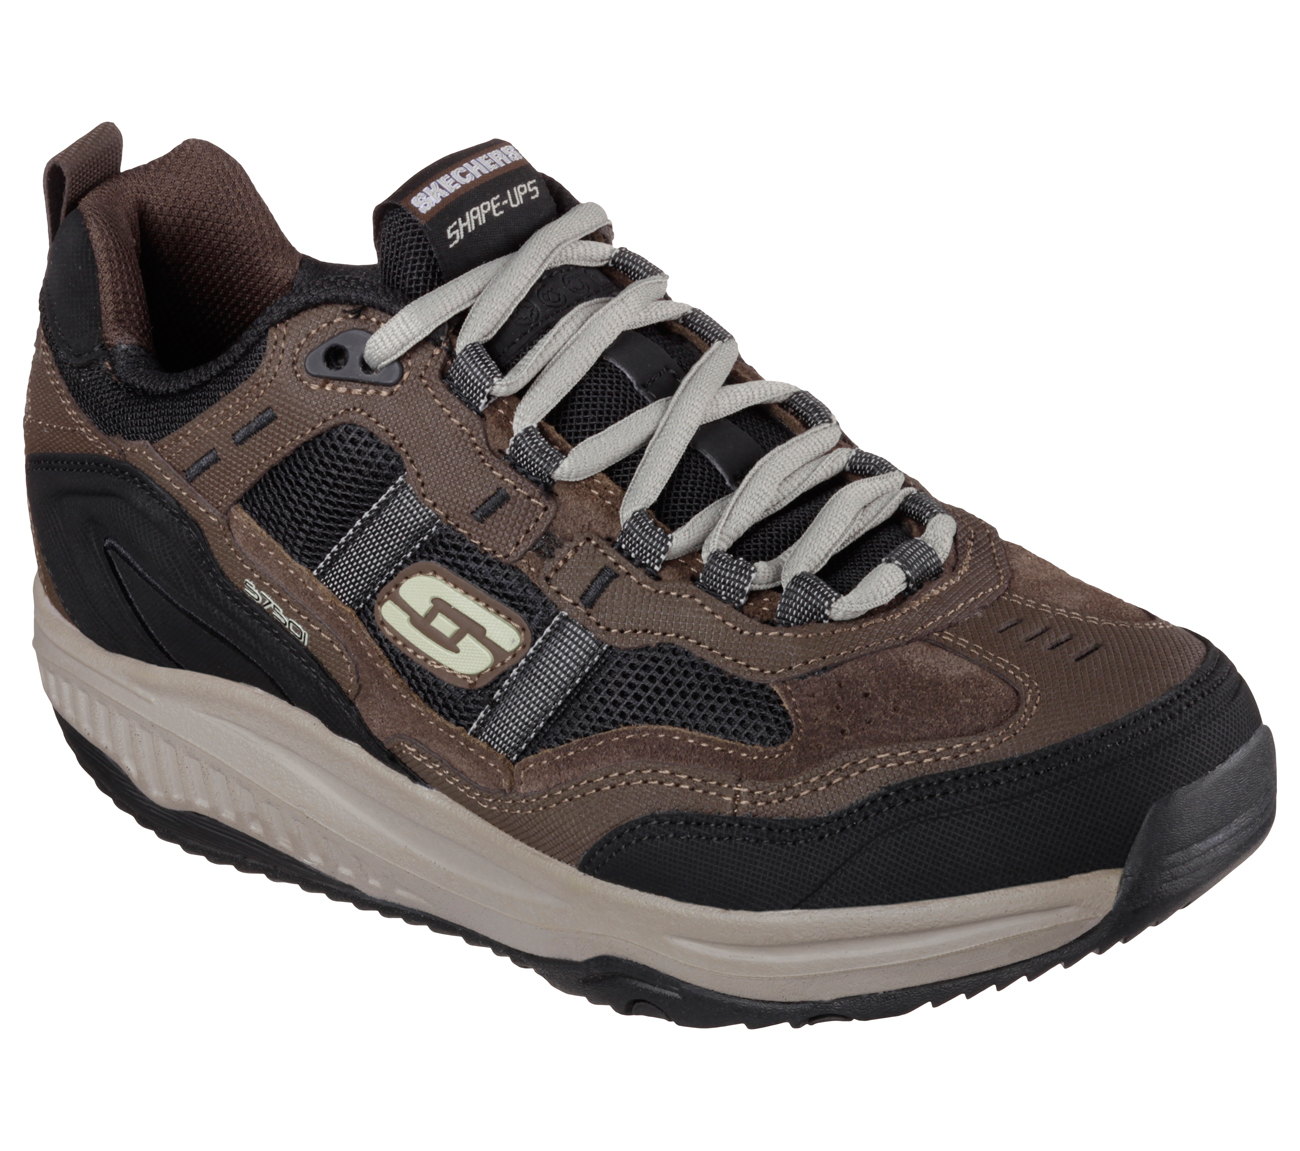 c41e19a49d6b skechers shape ups mens gold sale   OFF49% Discounted